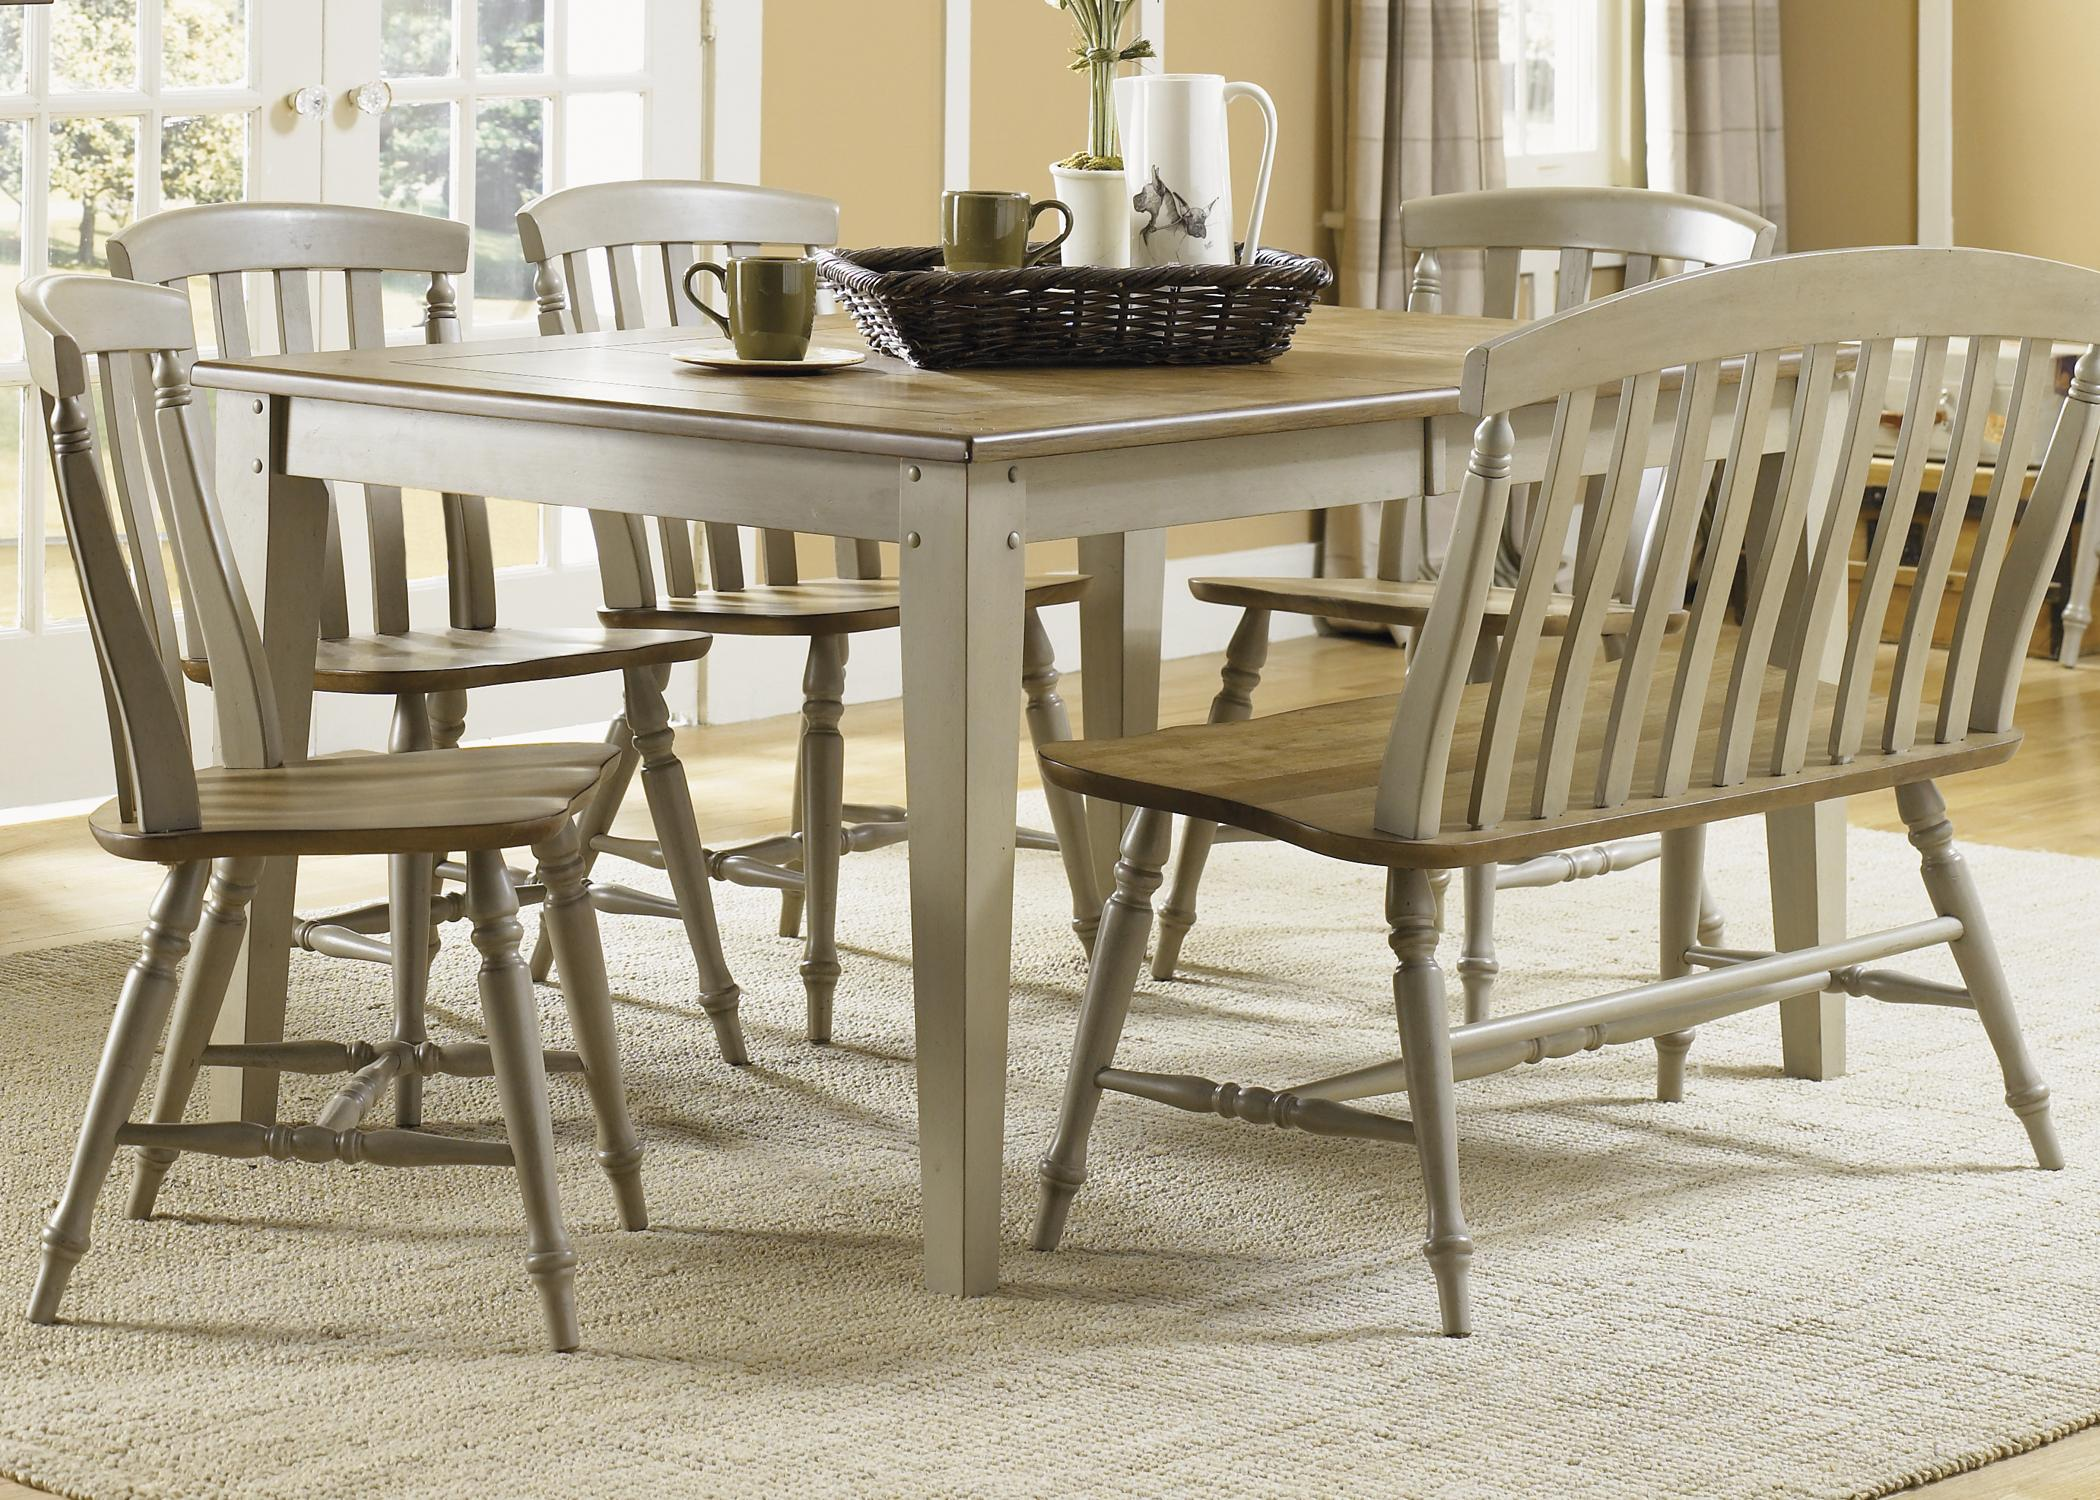 six piece dining table set with chairs and bench by liberty furniture wolf and gardiner wolf. Black Bedroom Furniture Sets. Home Design Ideas